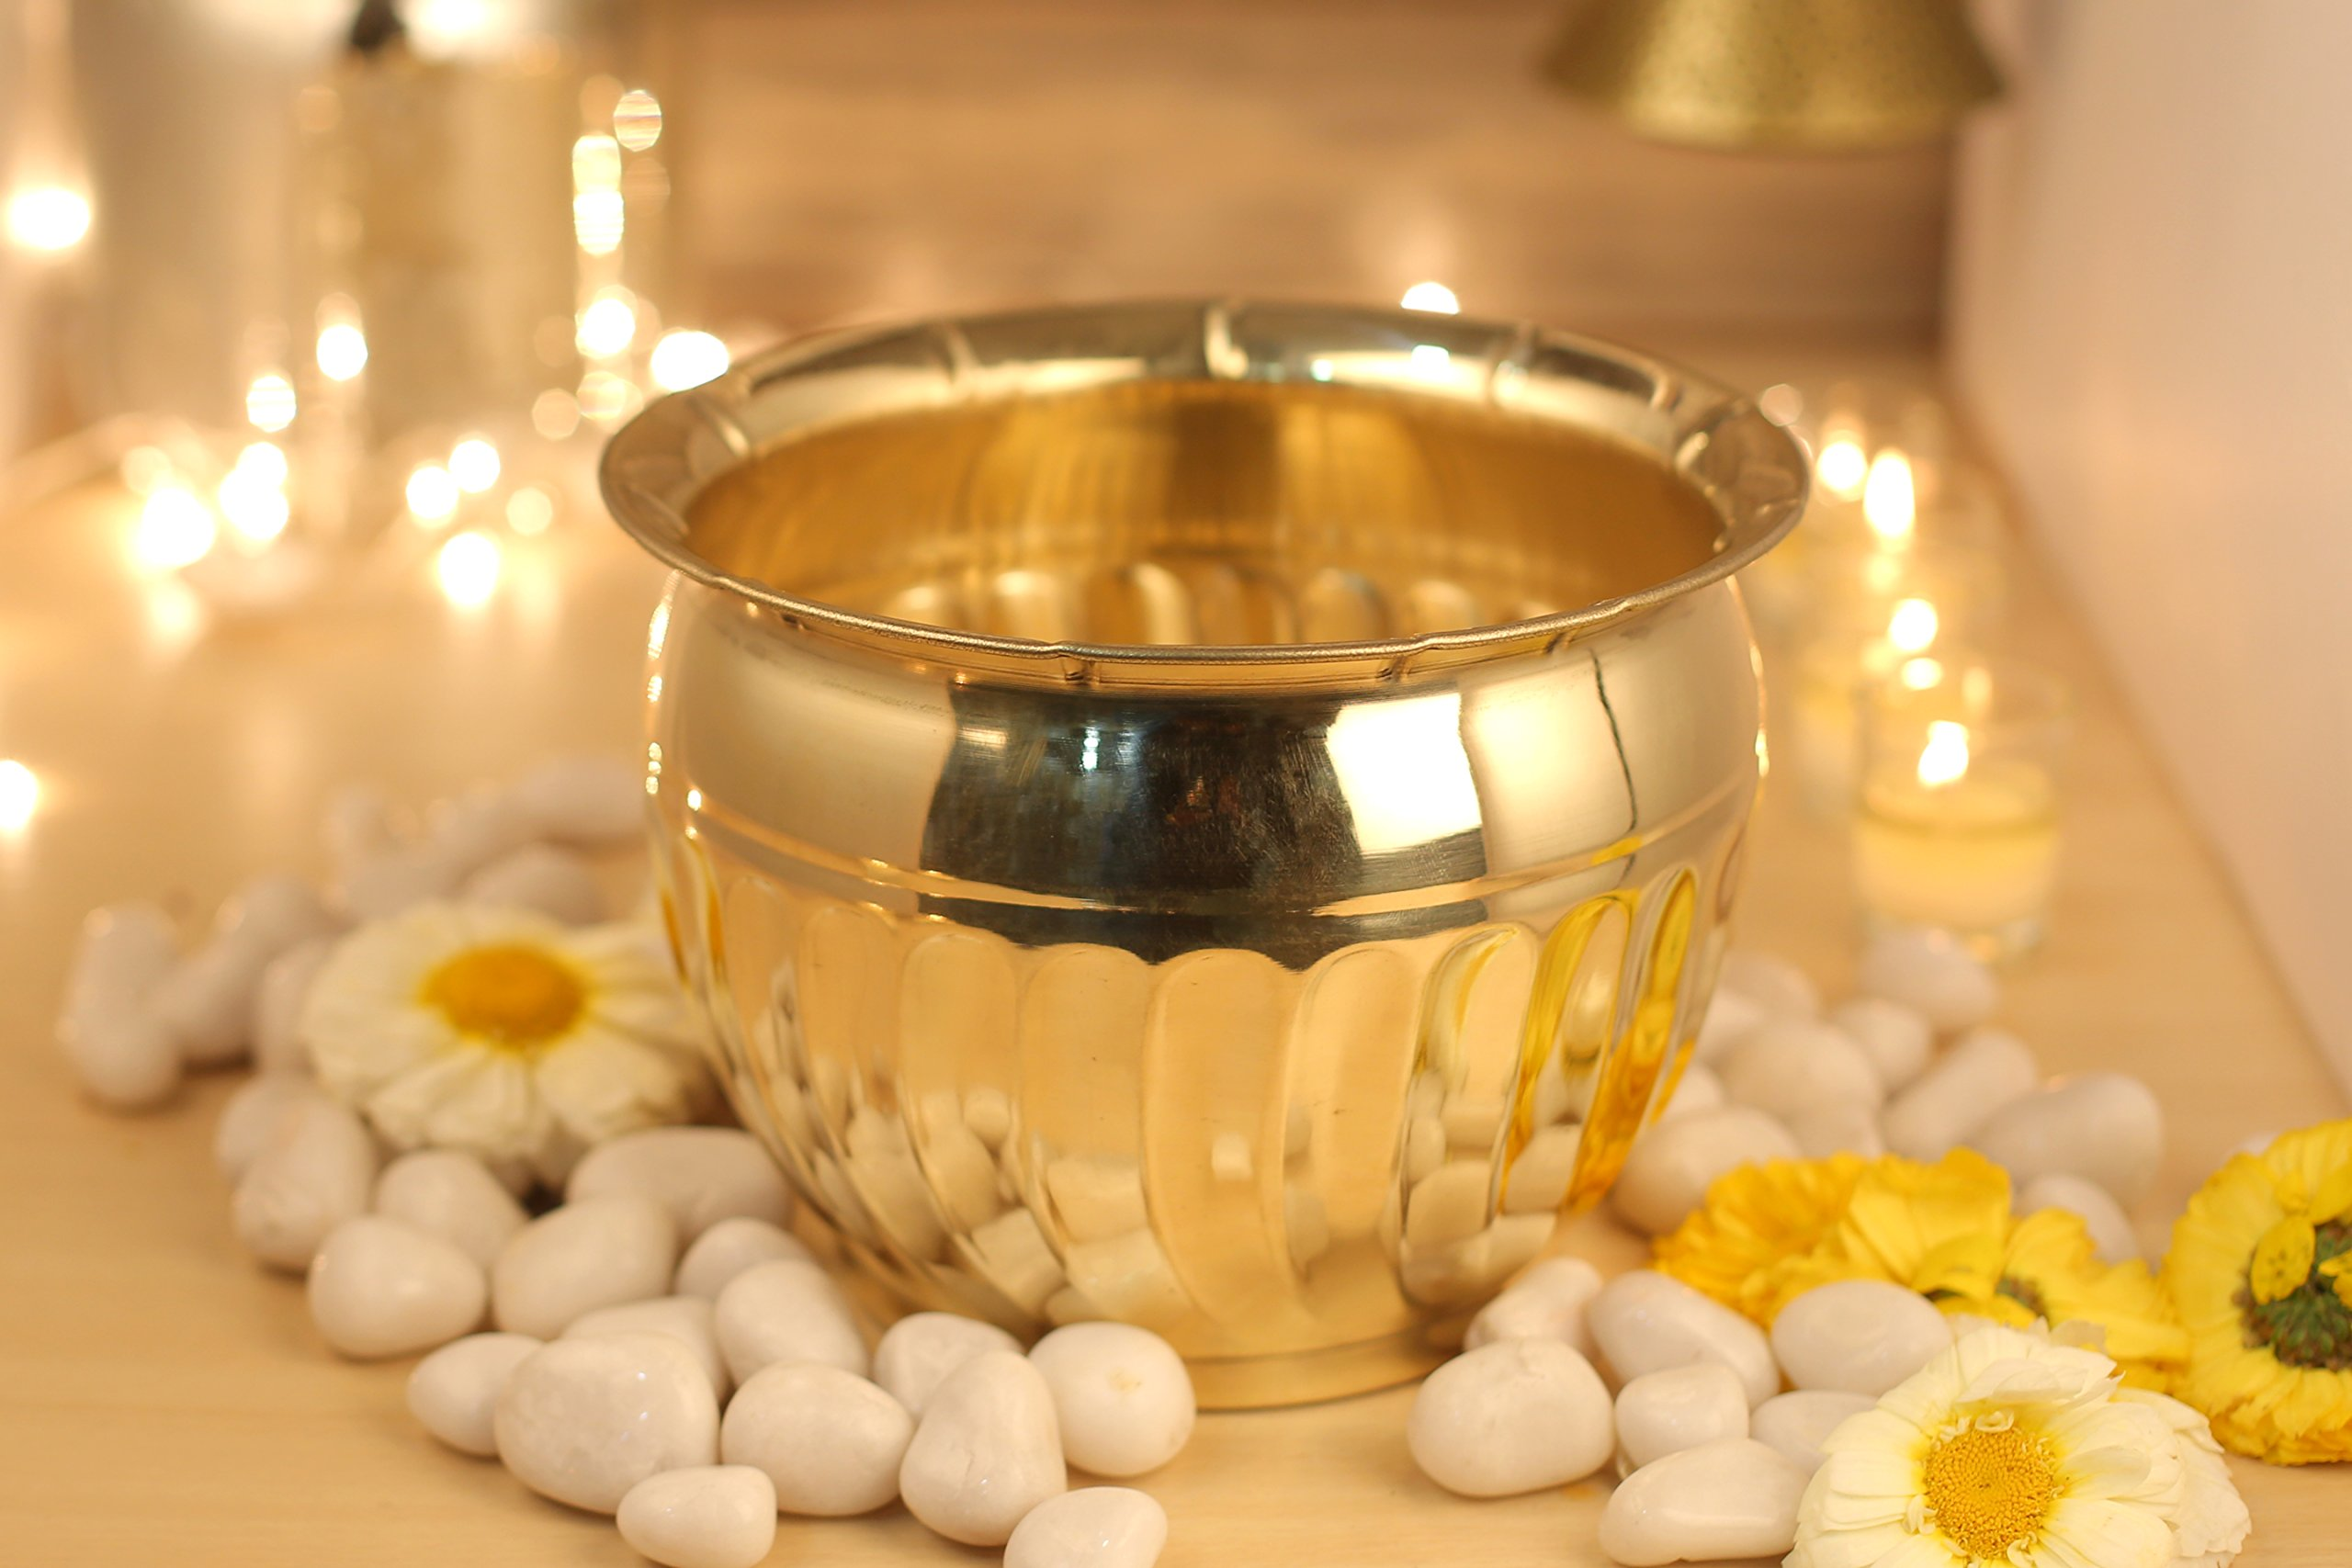 Aatm Decorative & Attractive Brass Round Planter/Size 7 Inch    Best Use for Home Decoration/Office/ Hotel/Restaurant   